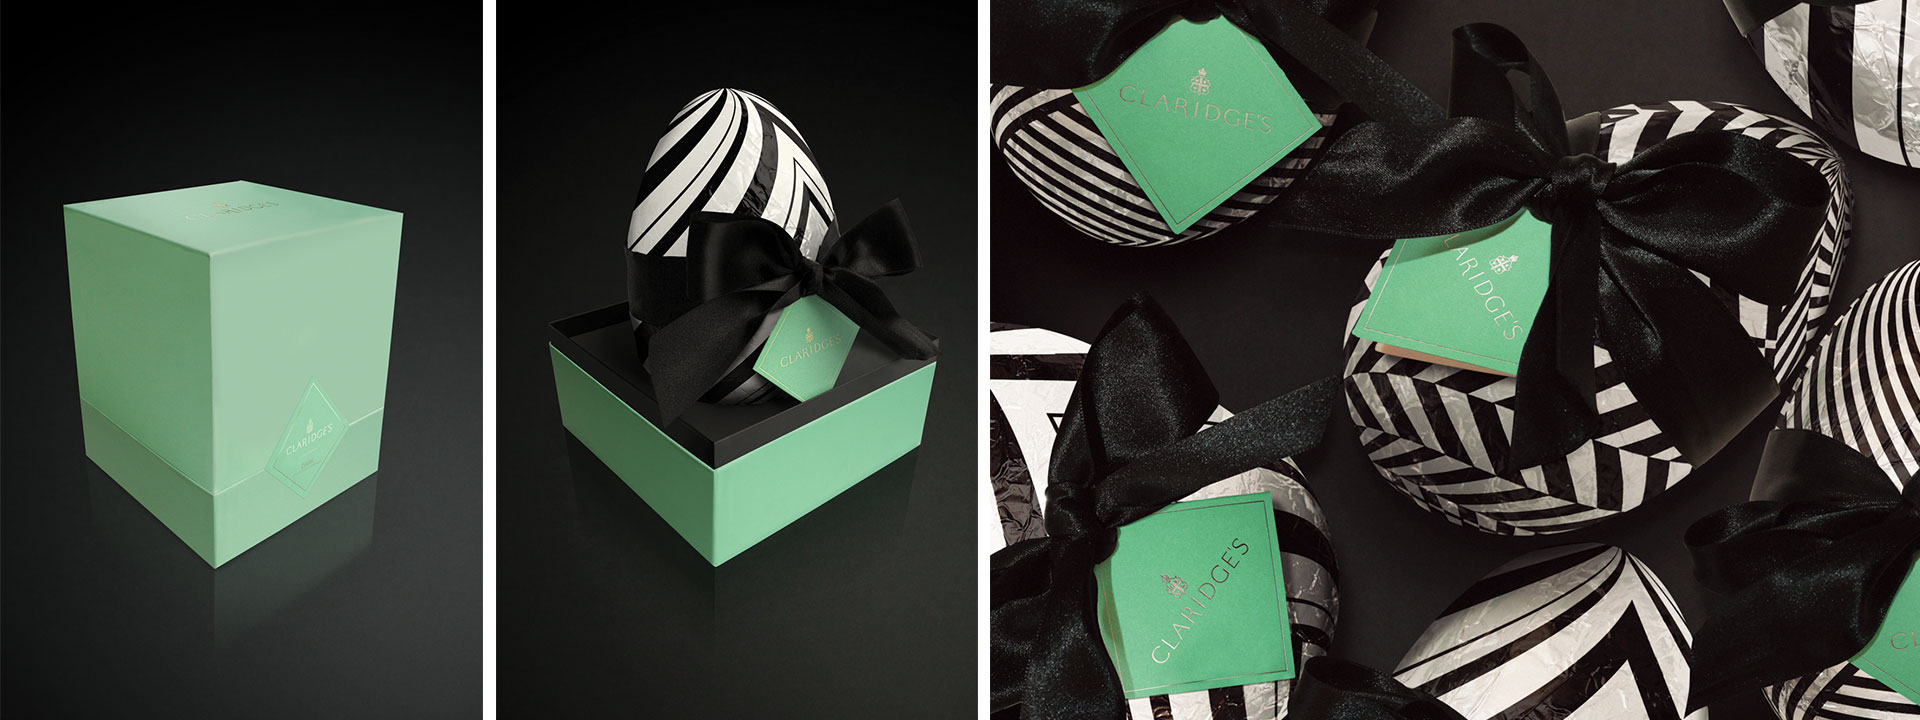 Claridges easter egg negle Image collections